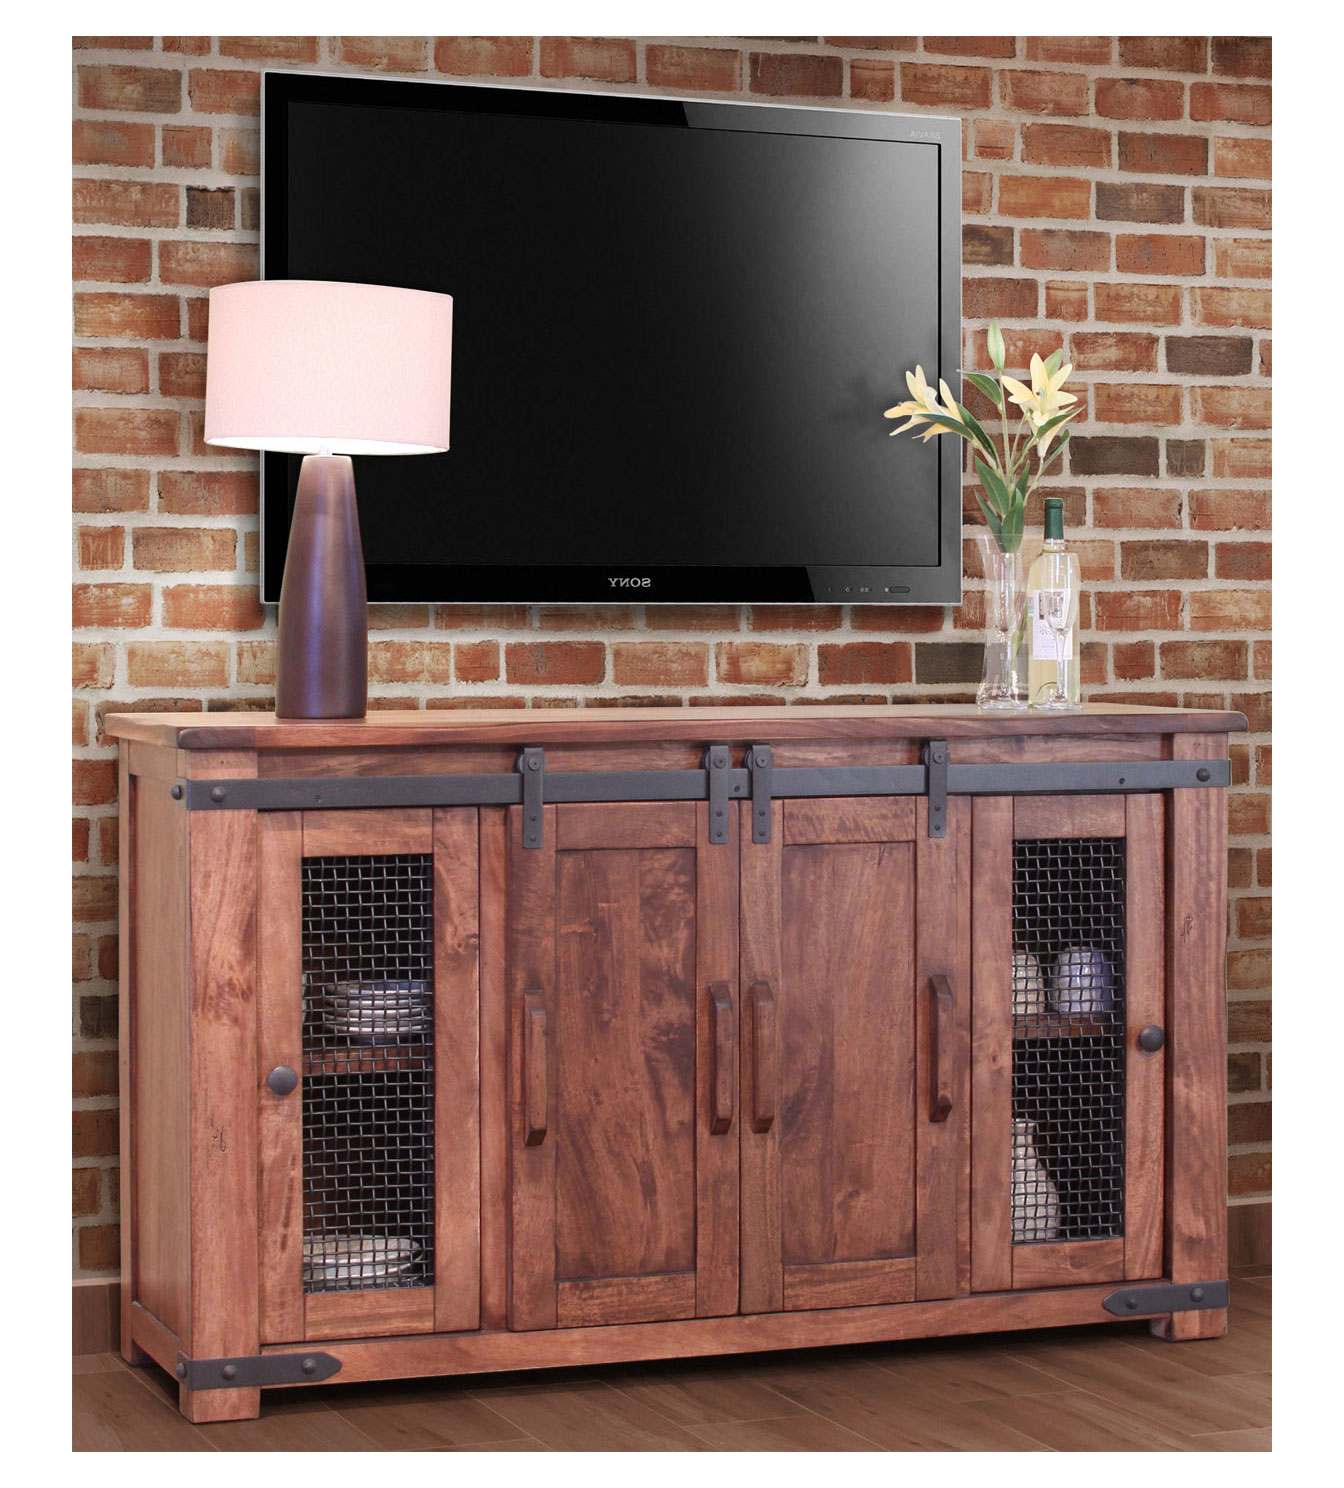 Tall Skinny Tv Stand Surprising Flat Screen Slim For Bedroom Corner For Best And Newest Slim Tv Stands (View 7 of 20)